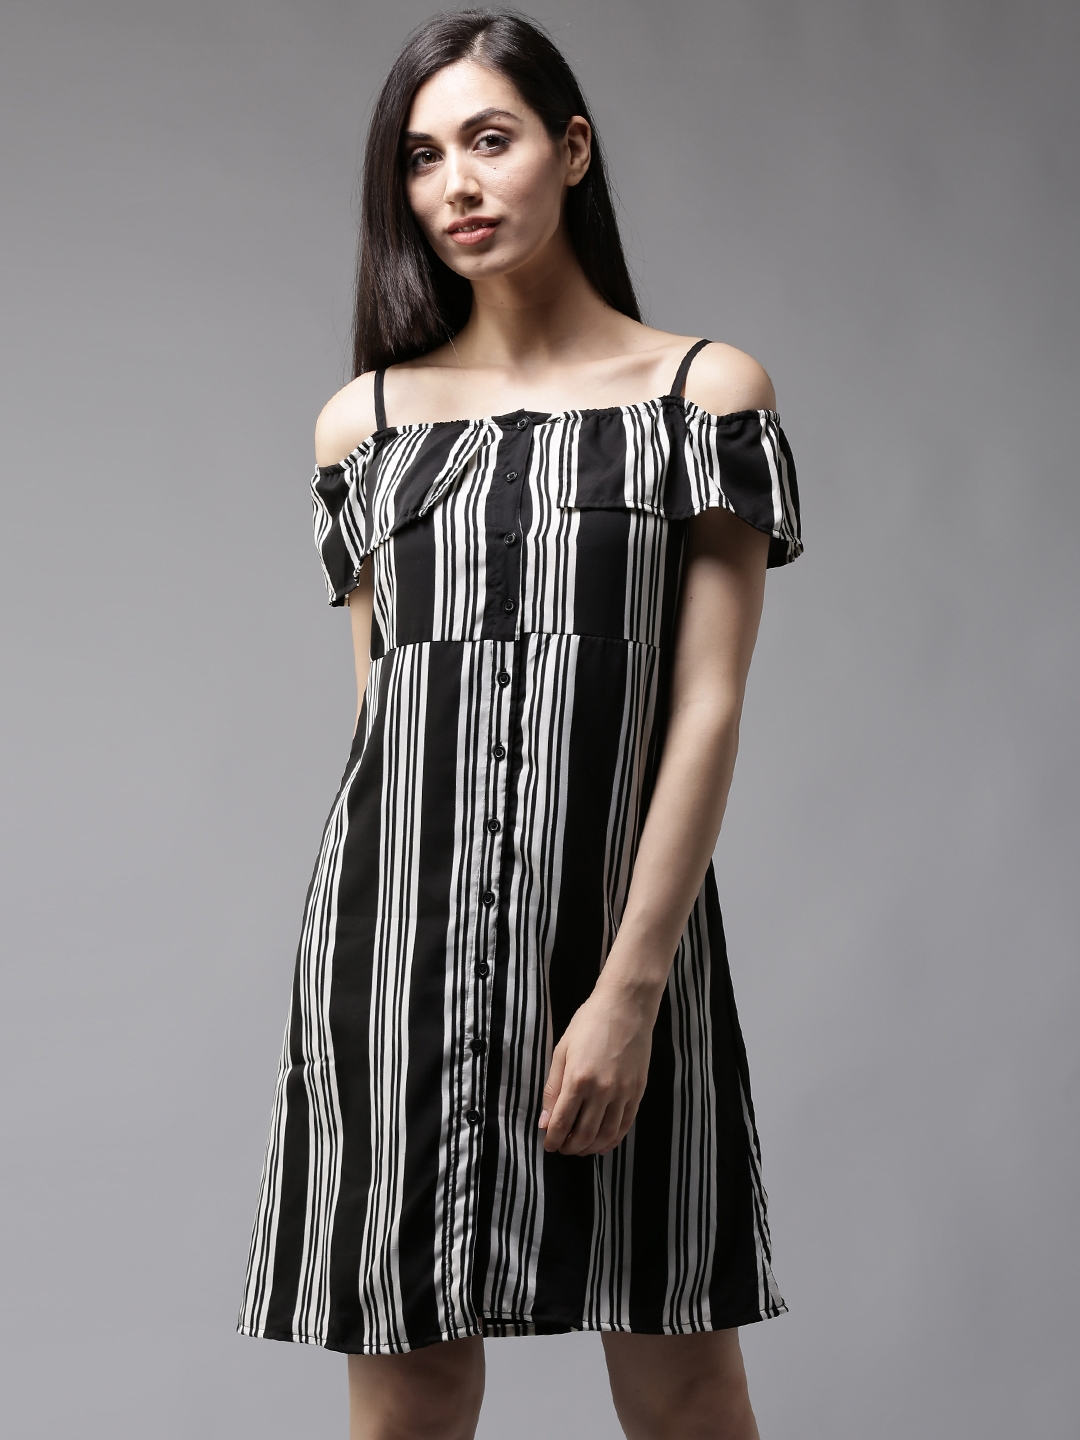 cb4aa6846a60 Buy HERE NOW Women Black   White Striped Off Shoulder A Line Dress - Dresses  for Women 3077314